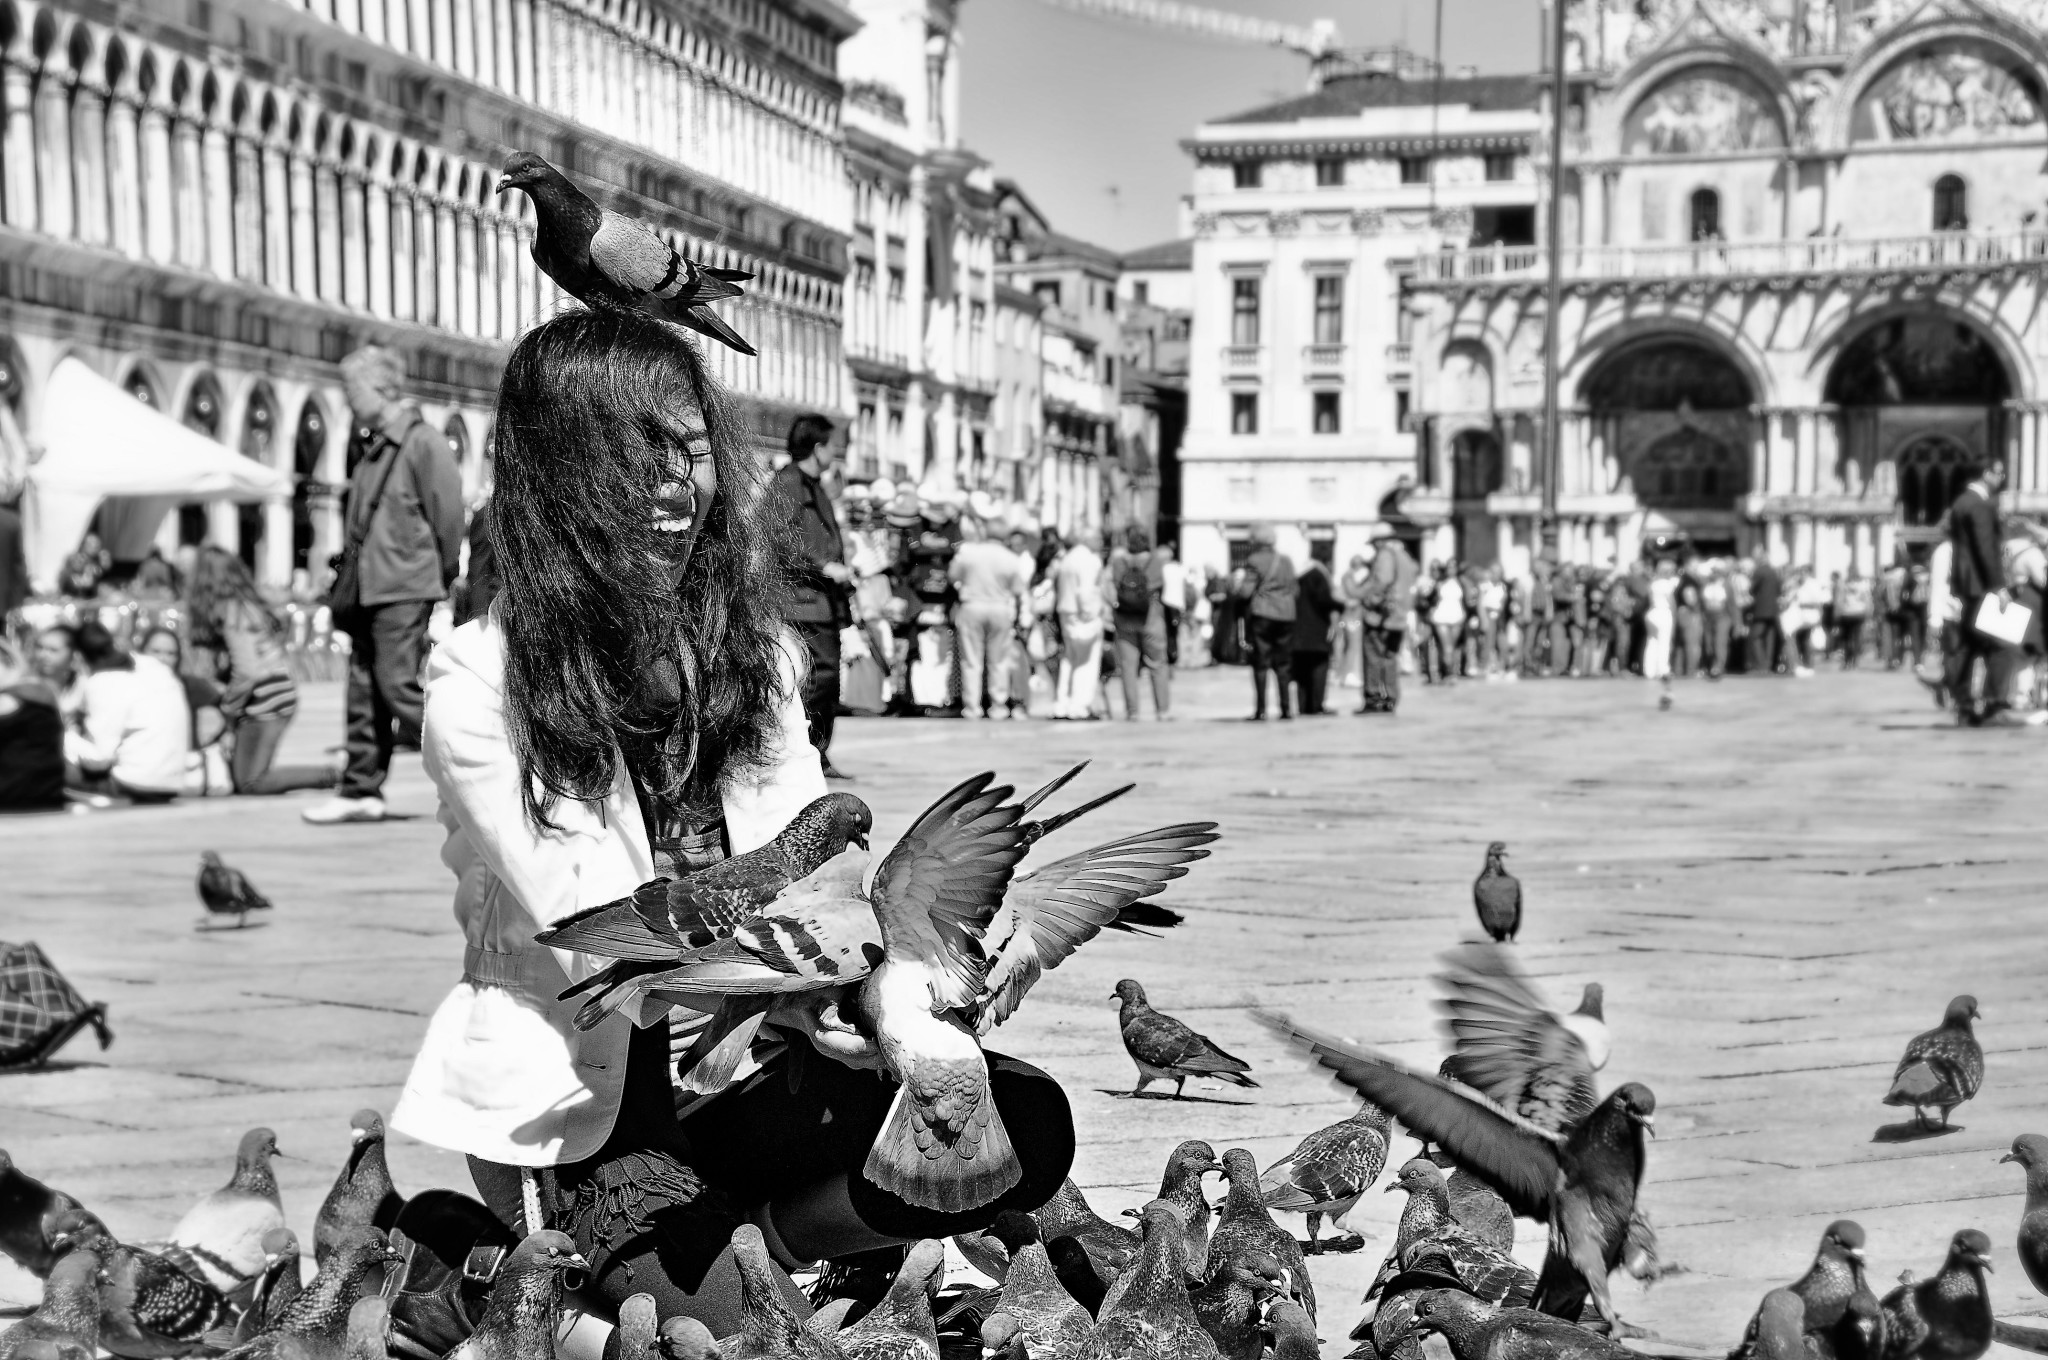 feeding the pigeons in Piazza San Marco in Venice